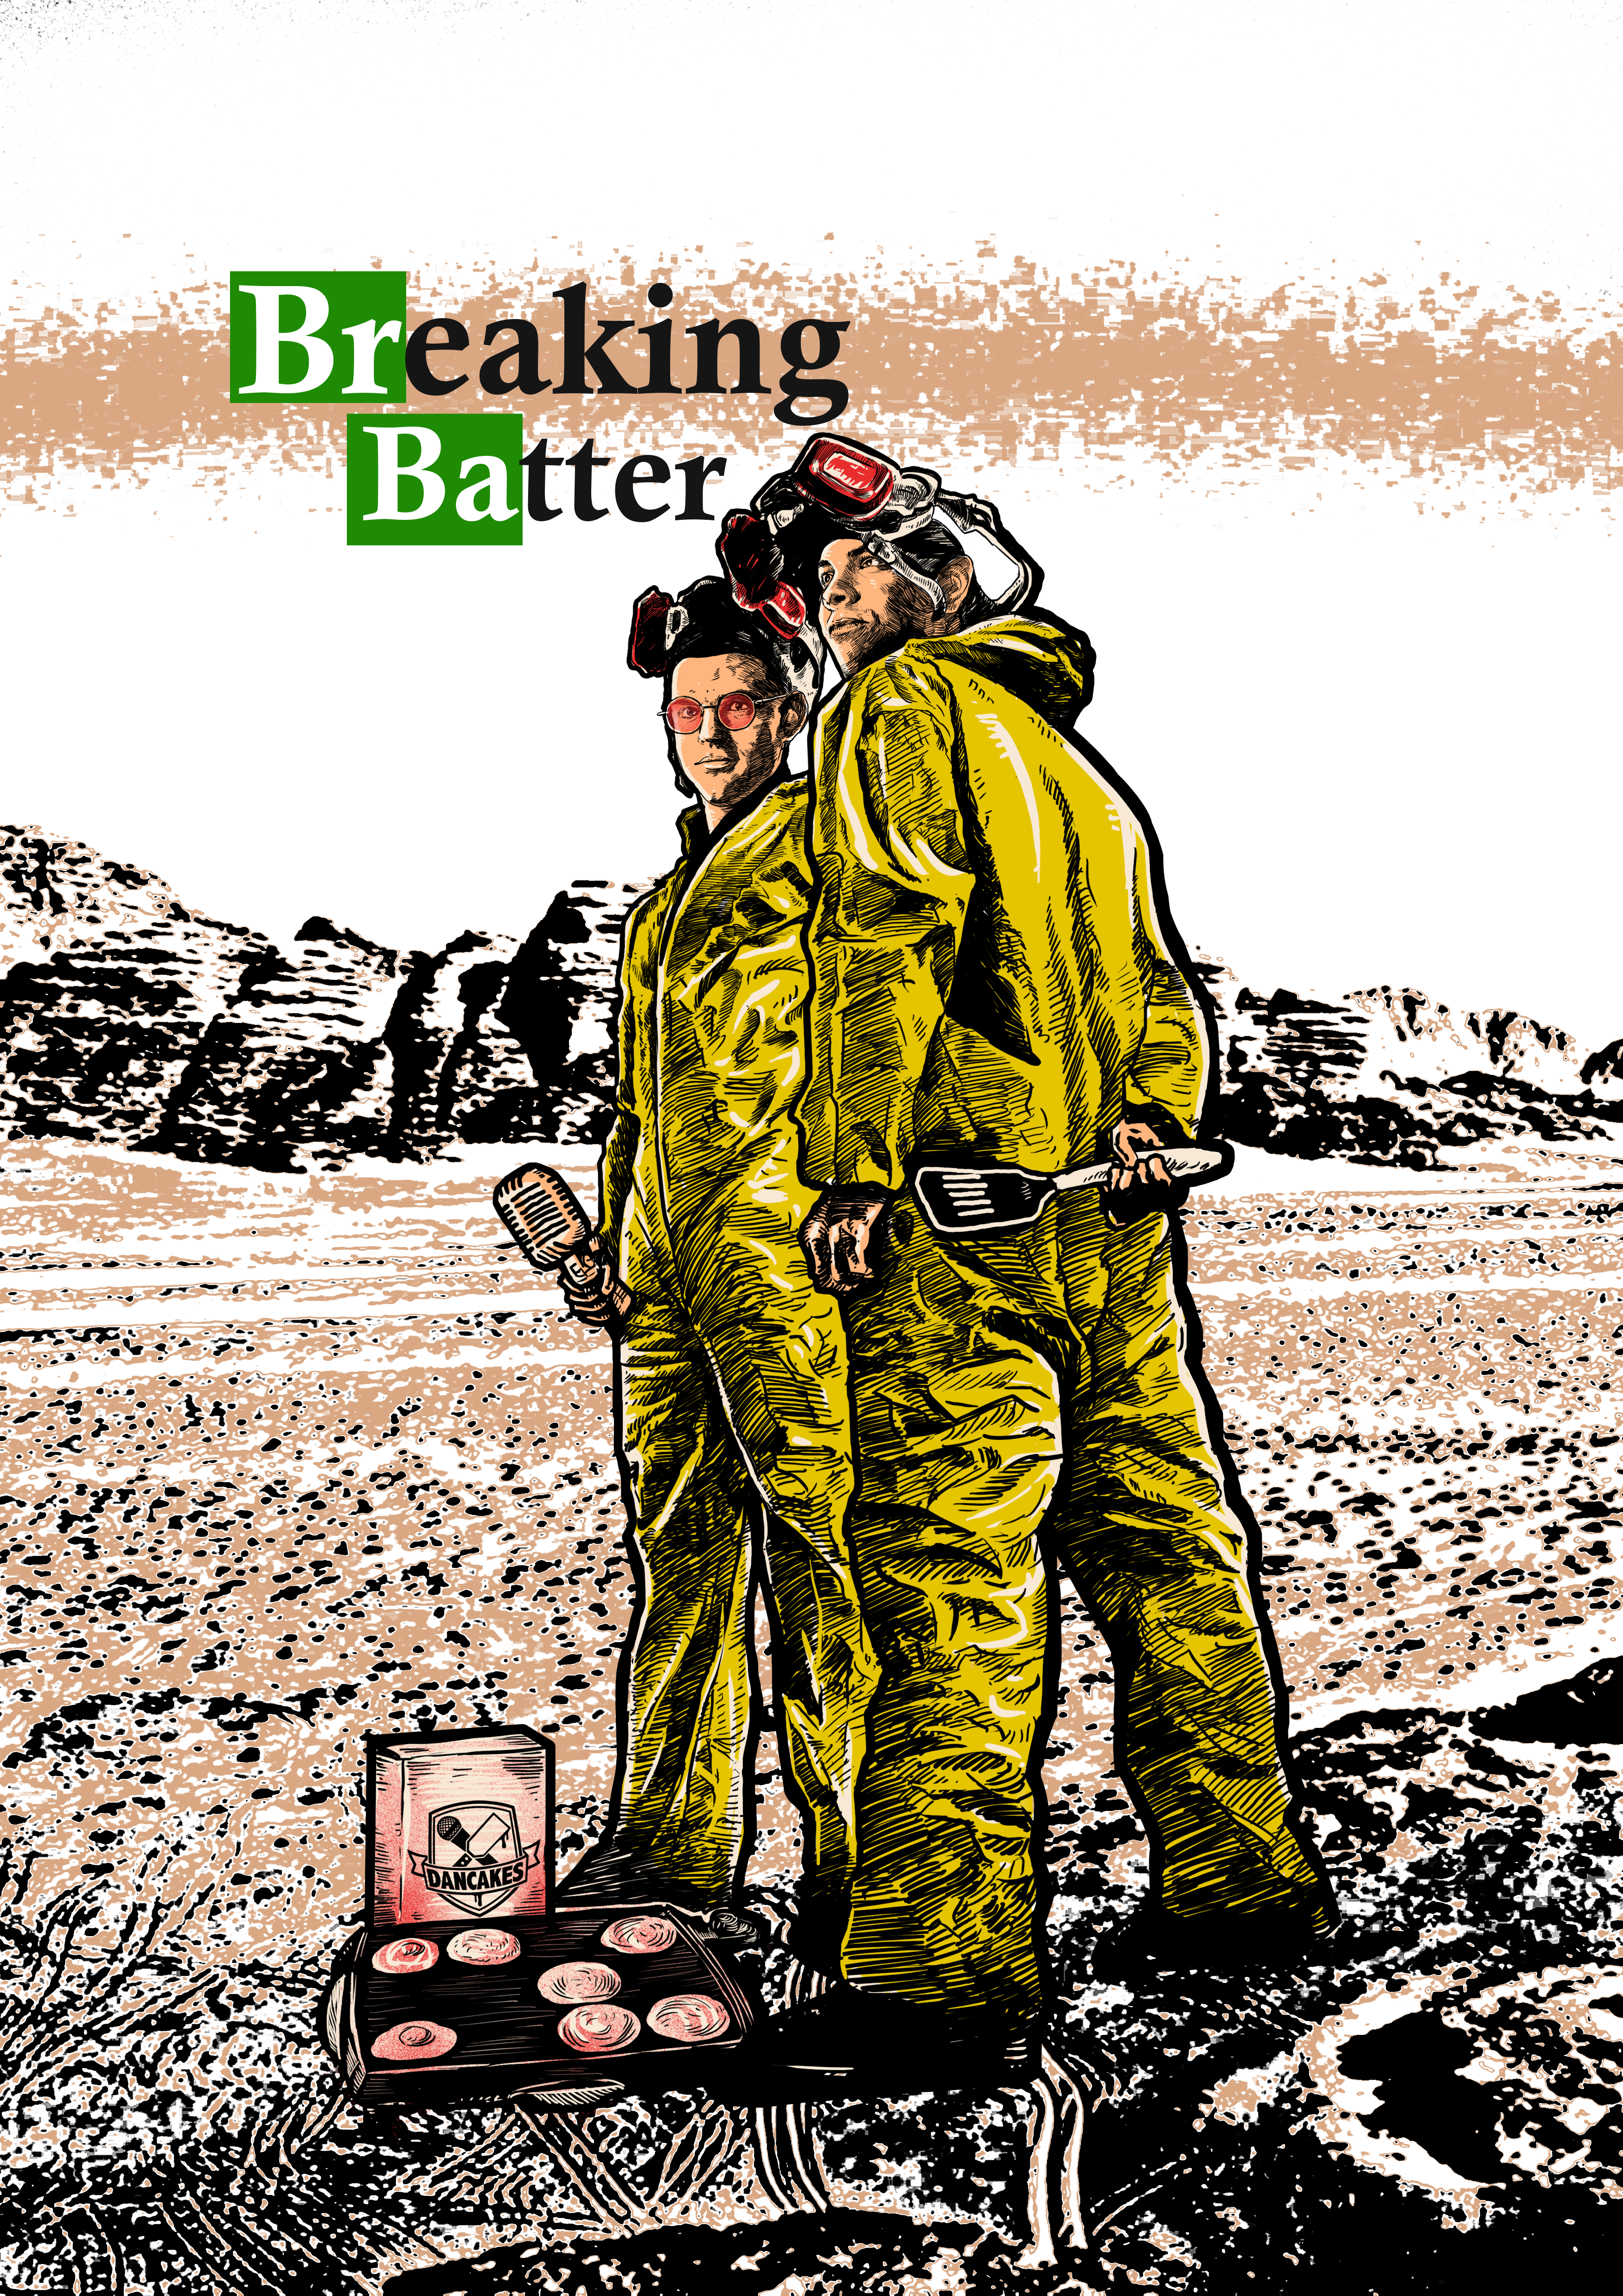 Create a clever Breaking Bad Parody image for Pancake Artists